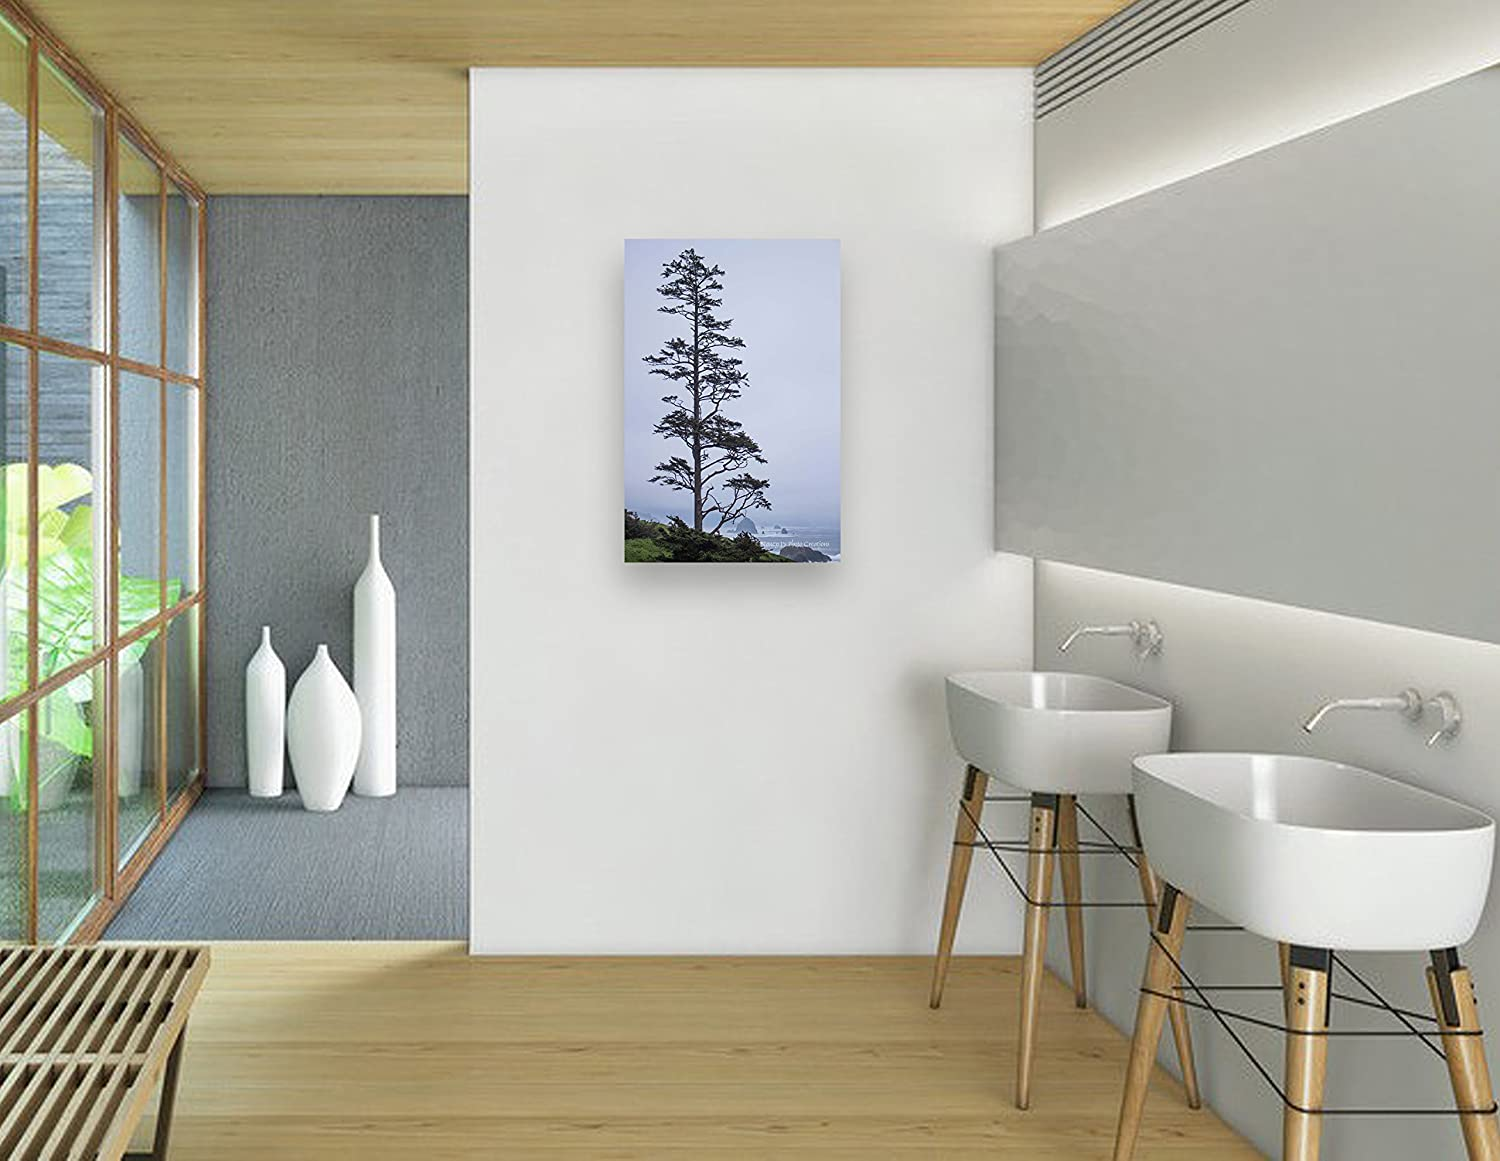 Wall decals choose an option 8x12 in 16x24 in 24x36 in -  Wall Art Ready To Hang Nature Photographic Print Cannon Beach Picture Pale Blue And Black Home Or Office Decor 8x12 12x18 16x24 20x30 24x36 Handmade